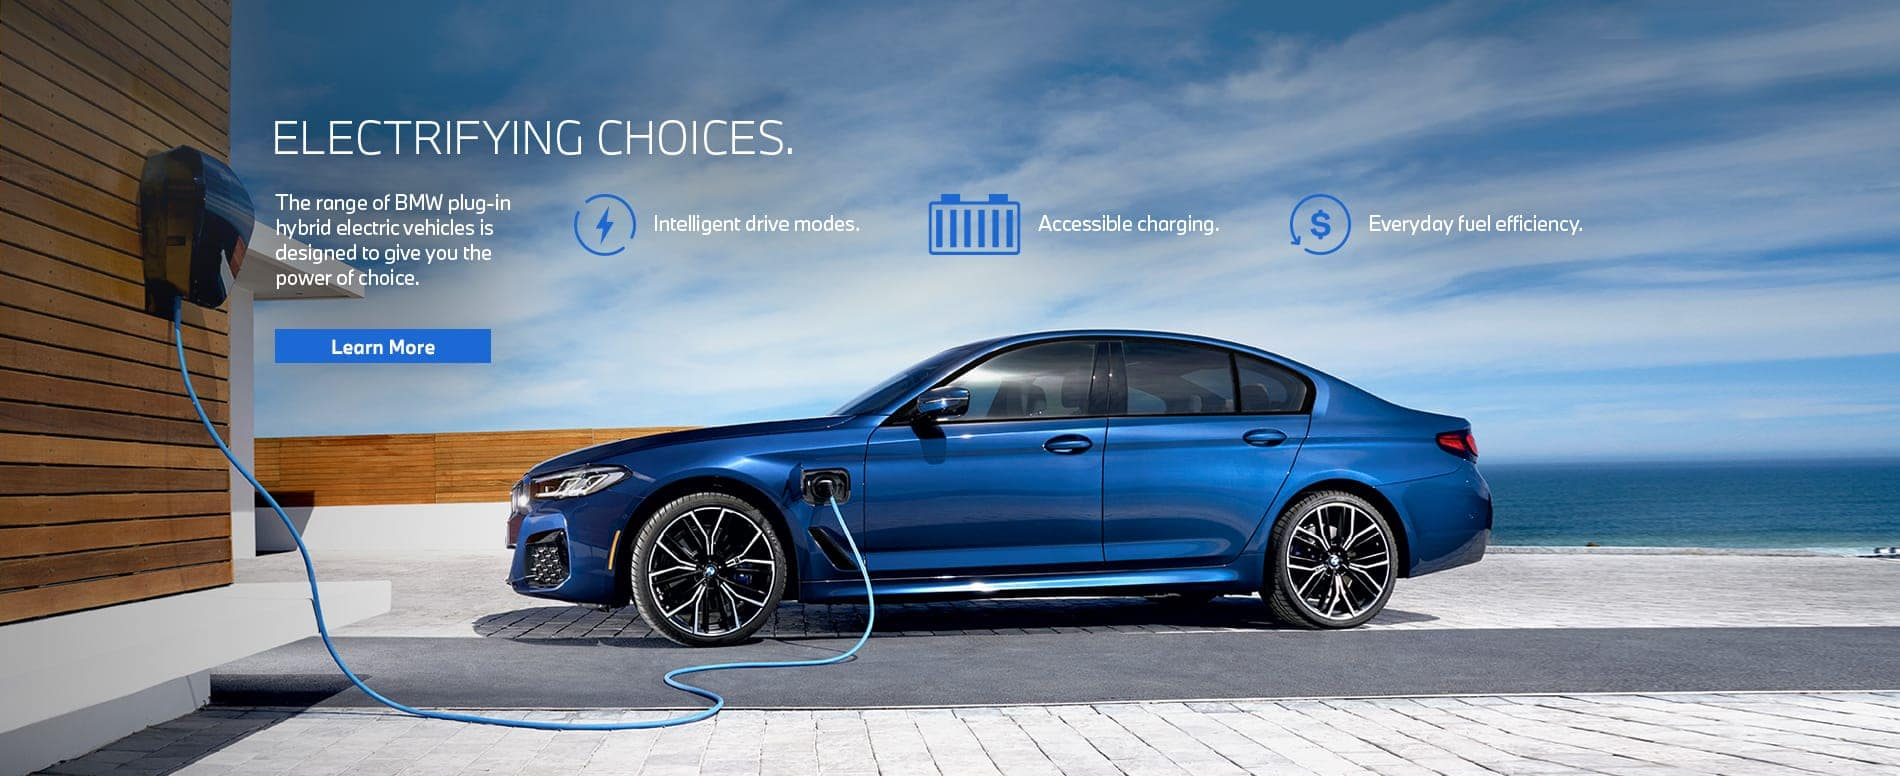 Blue 5 series plugged in charging